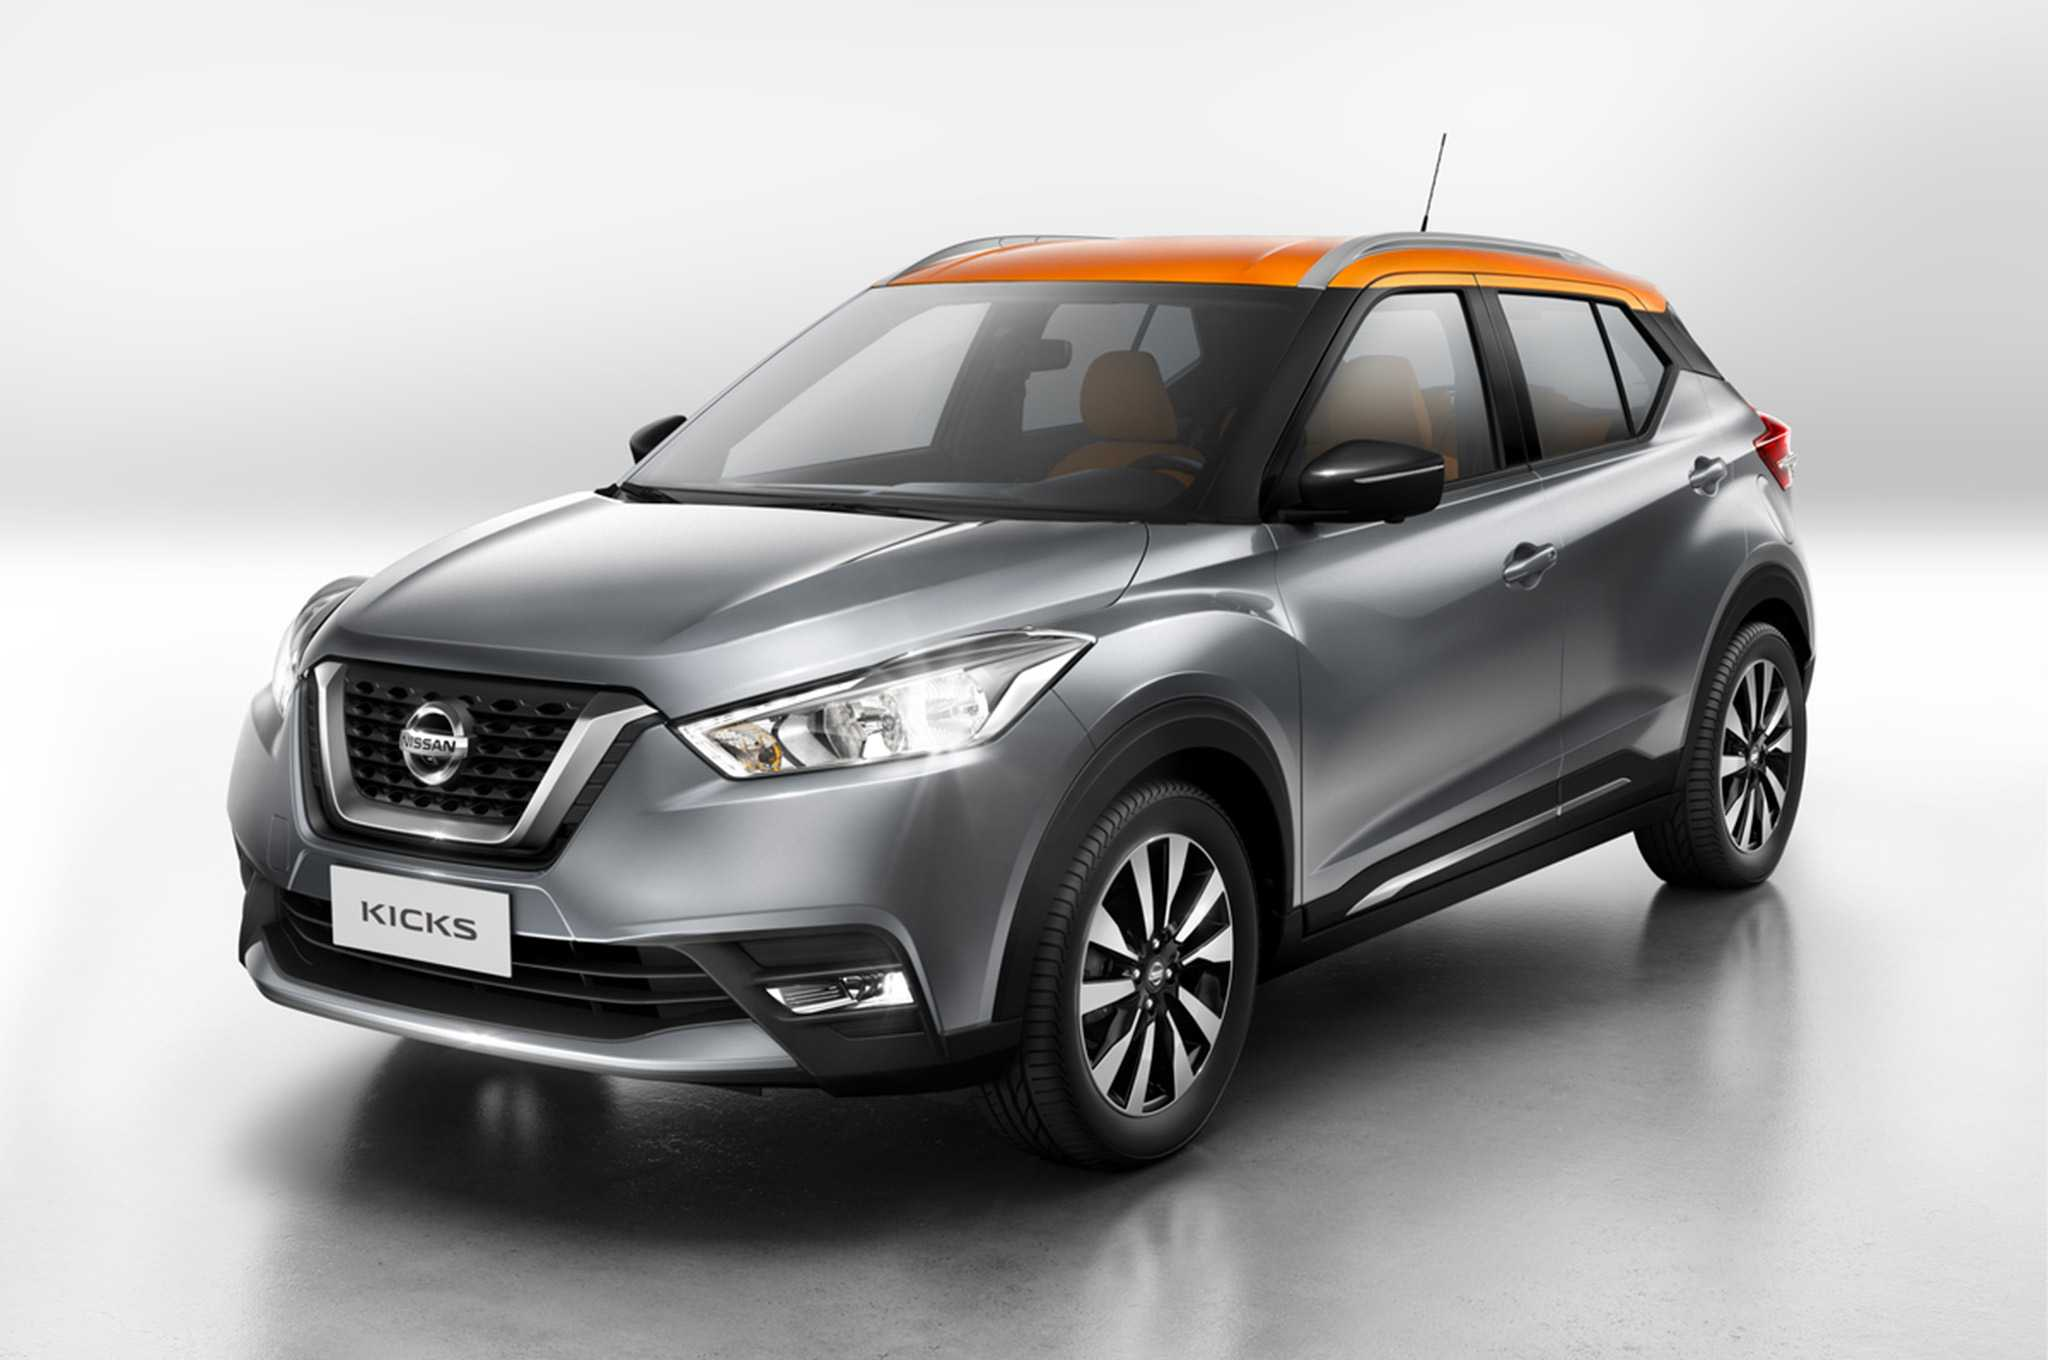 Nissan's Small Crossover Kicks is Now Official